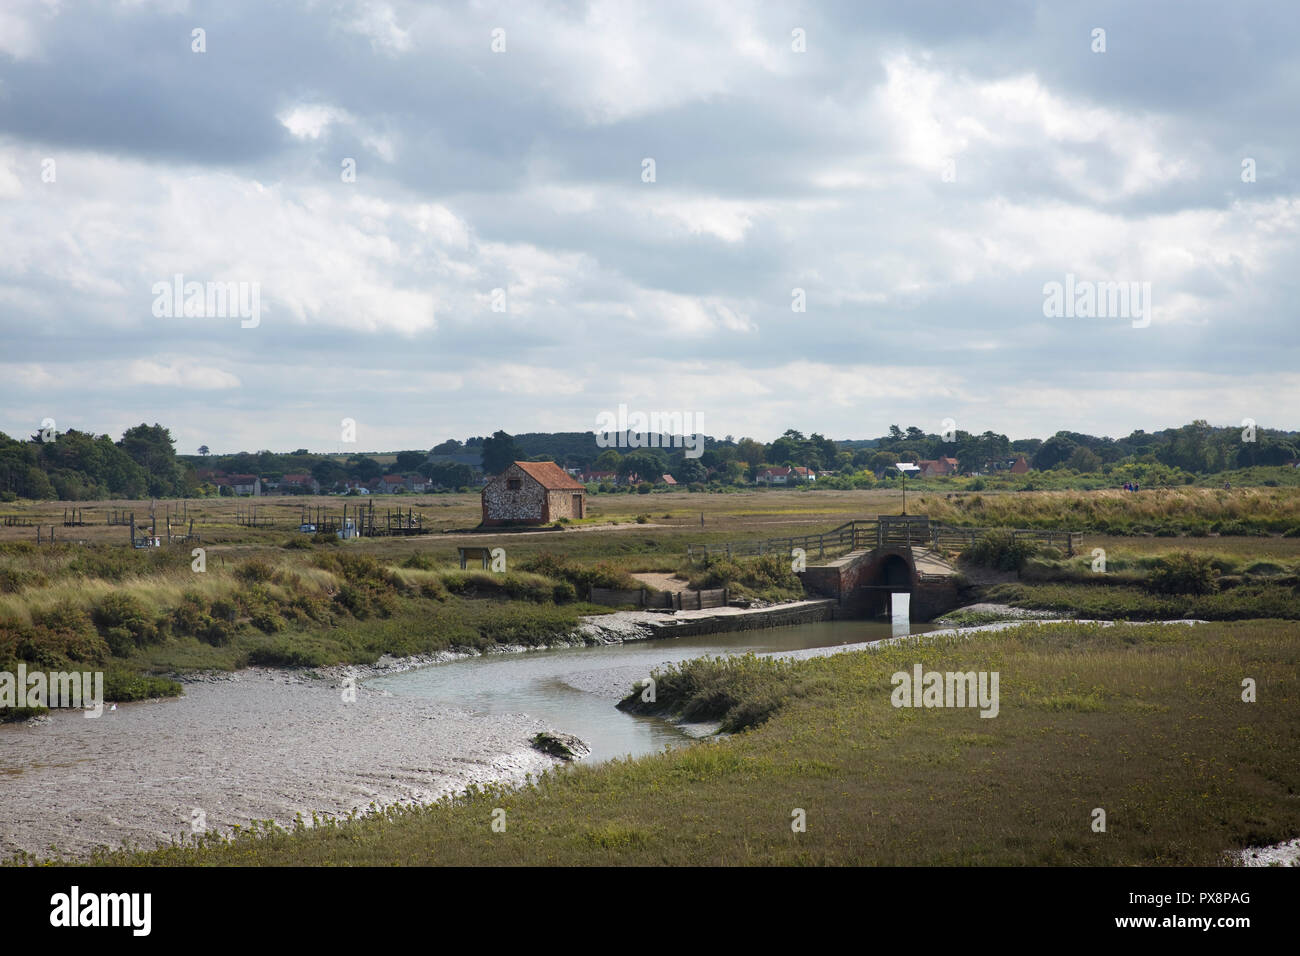 Old boat-house and estuary at Thornham Old Harbour, Thornham, Norfolk, England - Stock Image